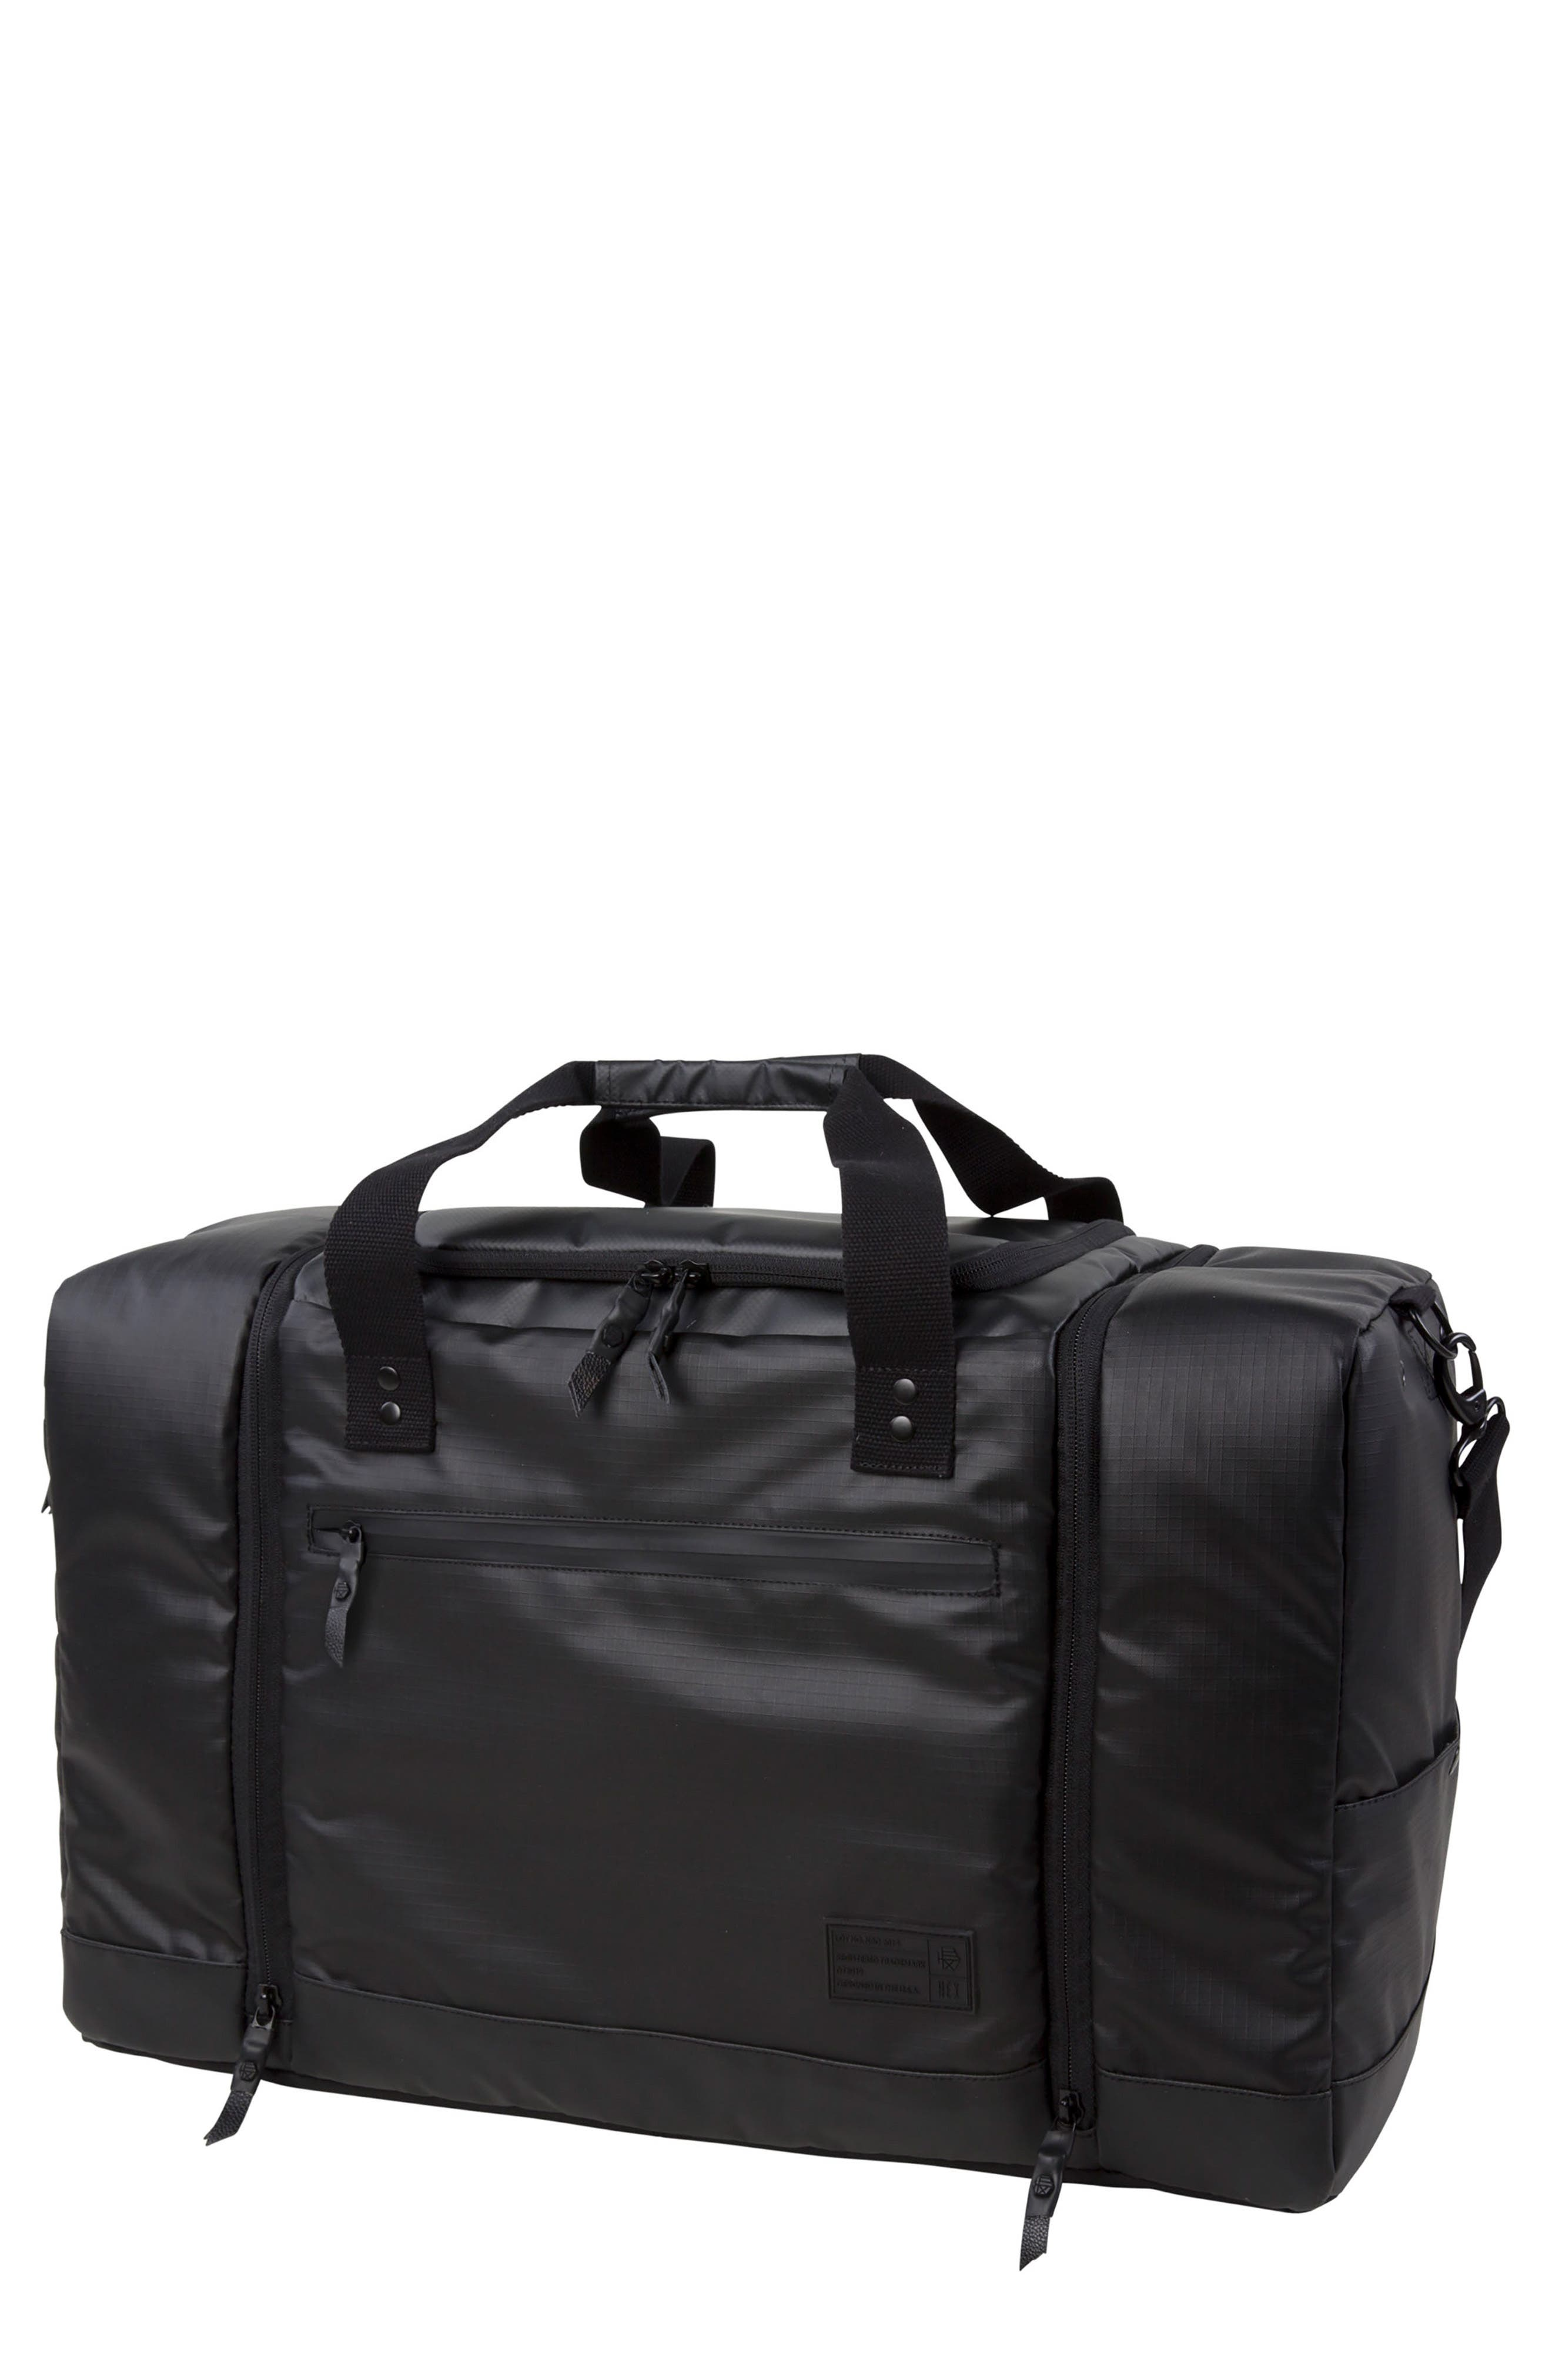 'Calibre' Sneaker Duffel Bag, Main, color, 003